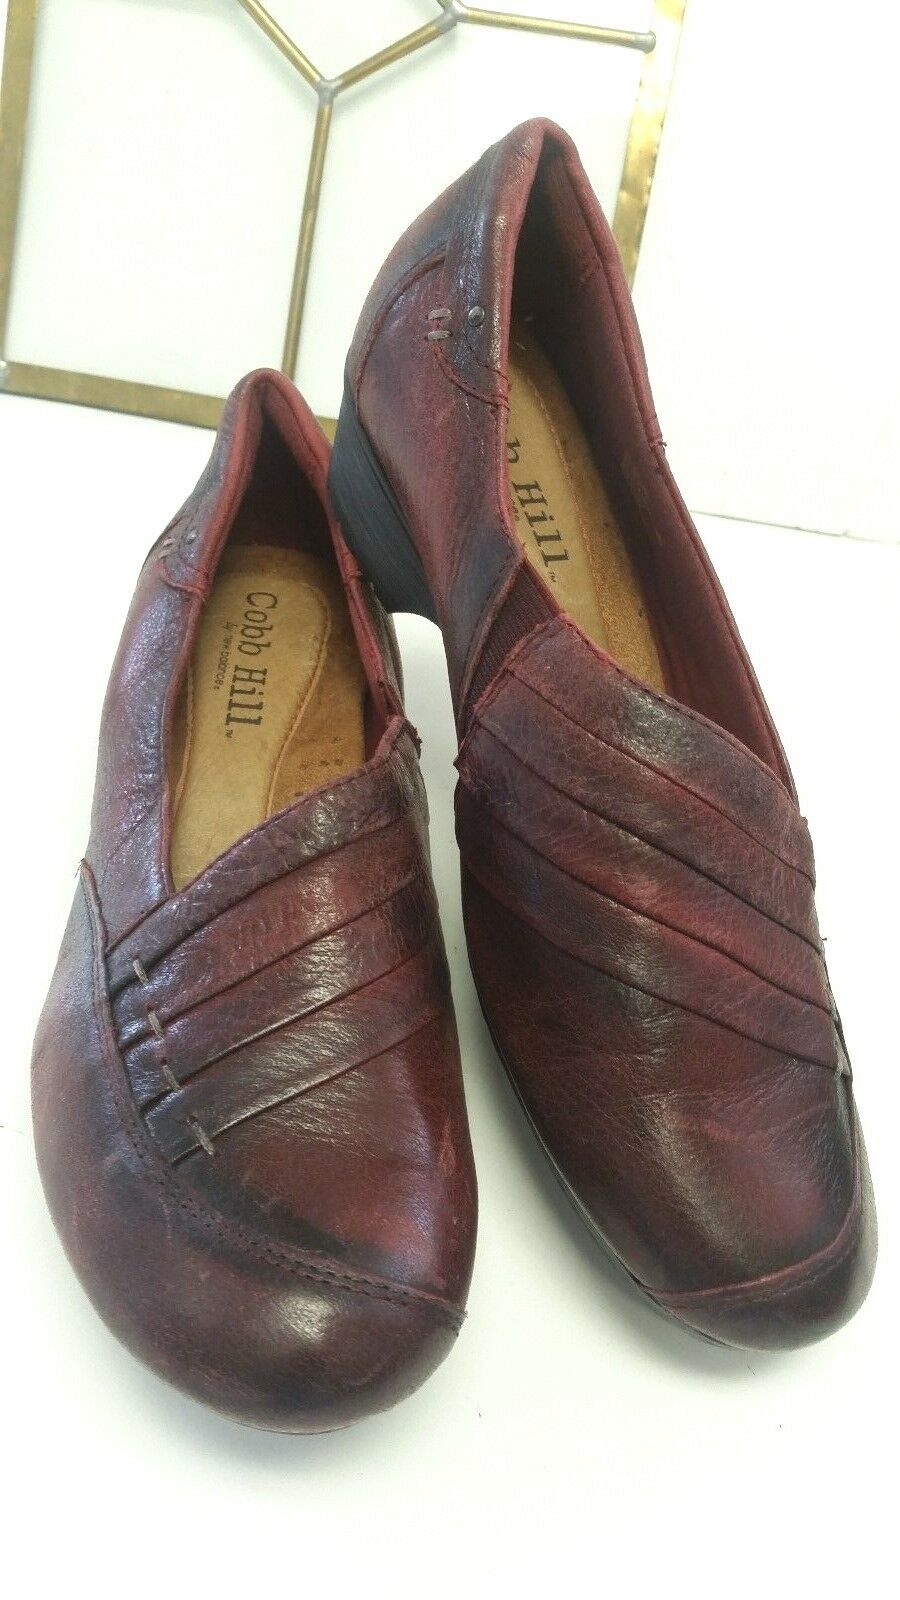 Cobb HilL damen damen damen Burgundy Leather Comfort schuhe HUGE SALE 7.5w EUC d35958